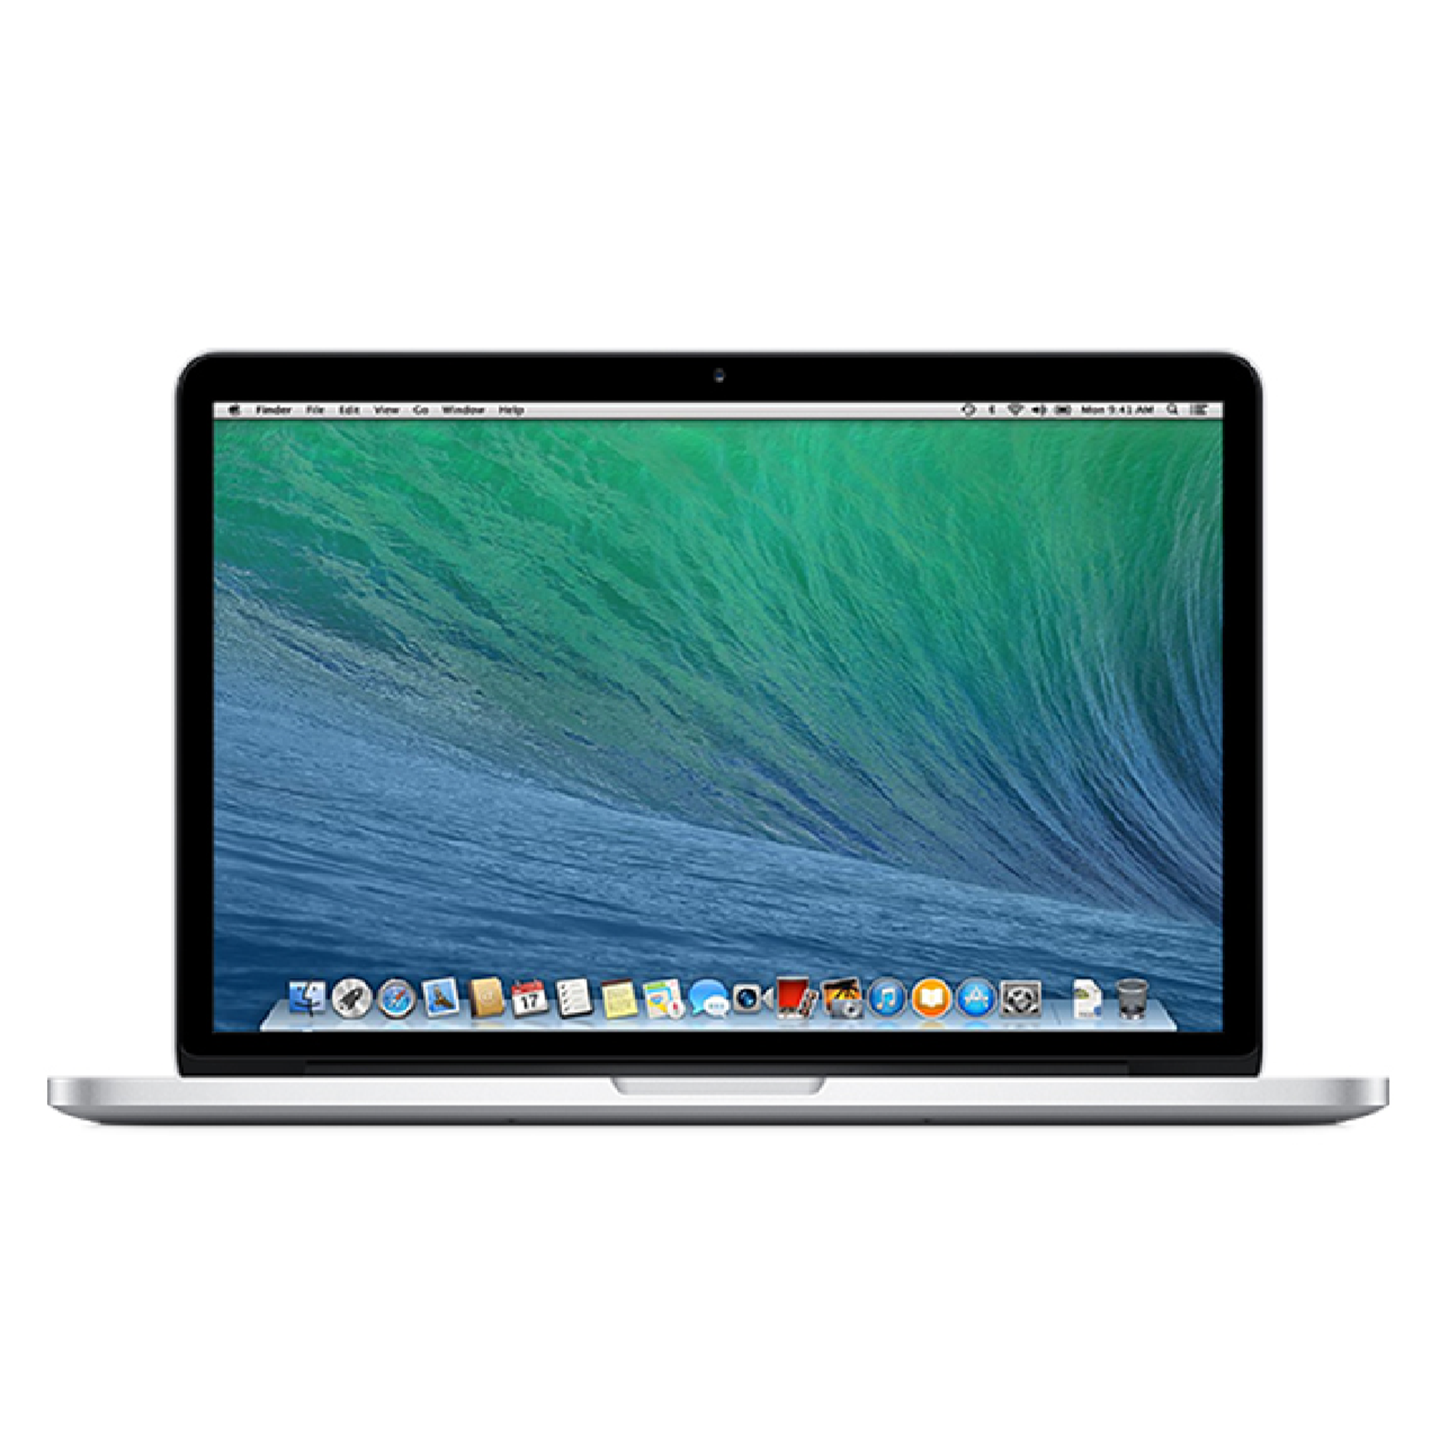 MacBook Pro (Retina, 13-inch, Late 2013)Core i5/4GB/SSD128GBE785